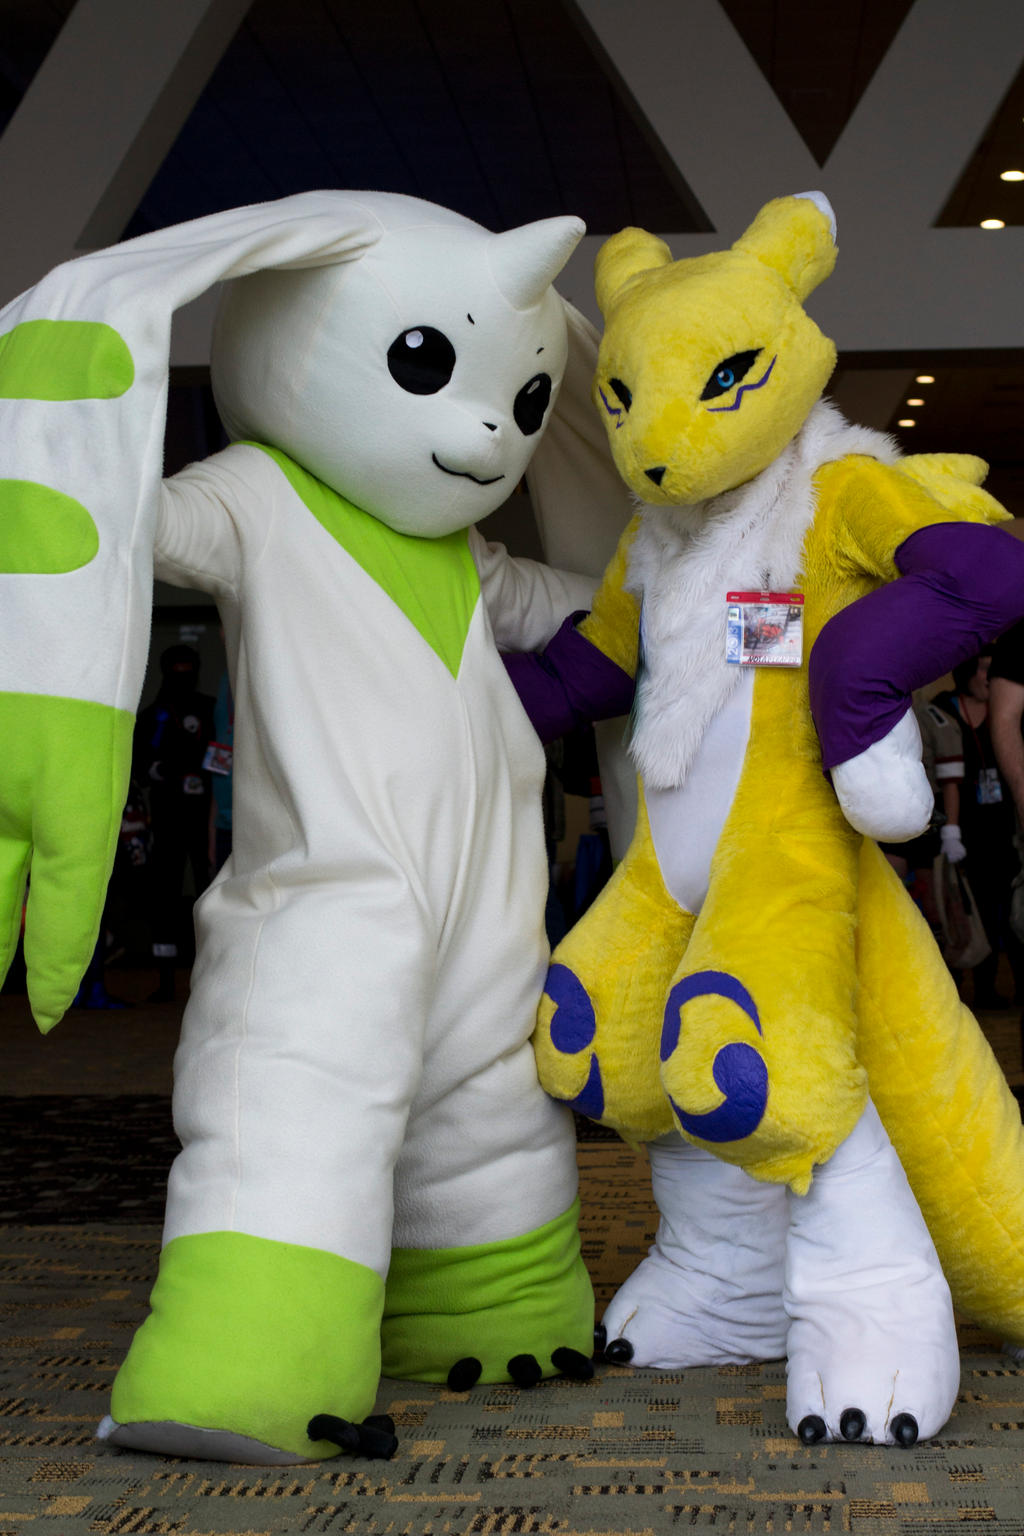 Terriermon and Renamon by Firewolf77